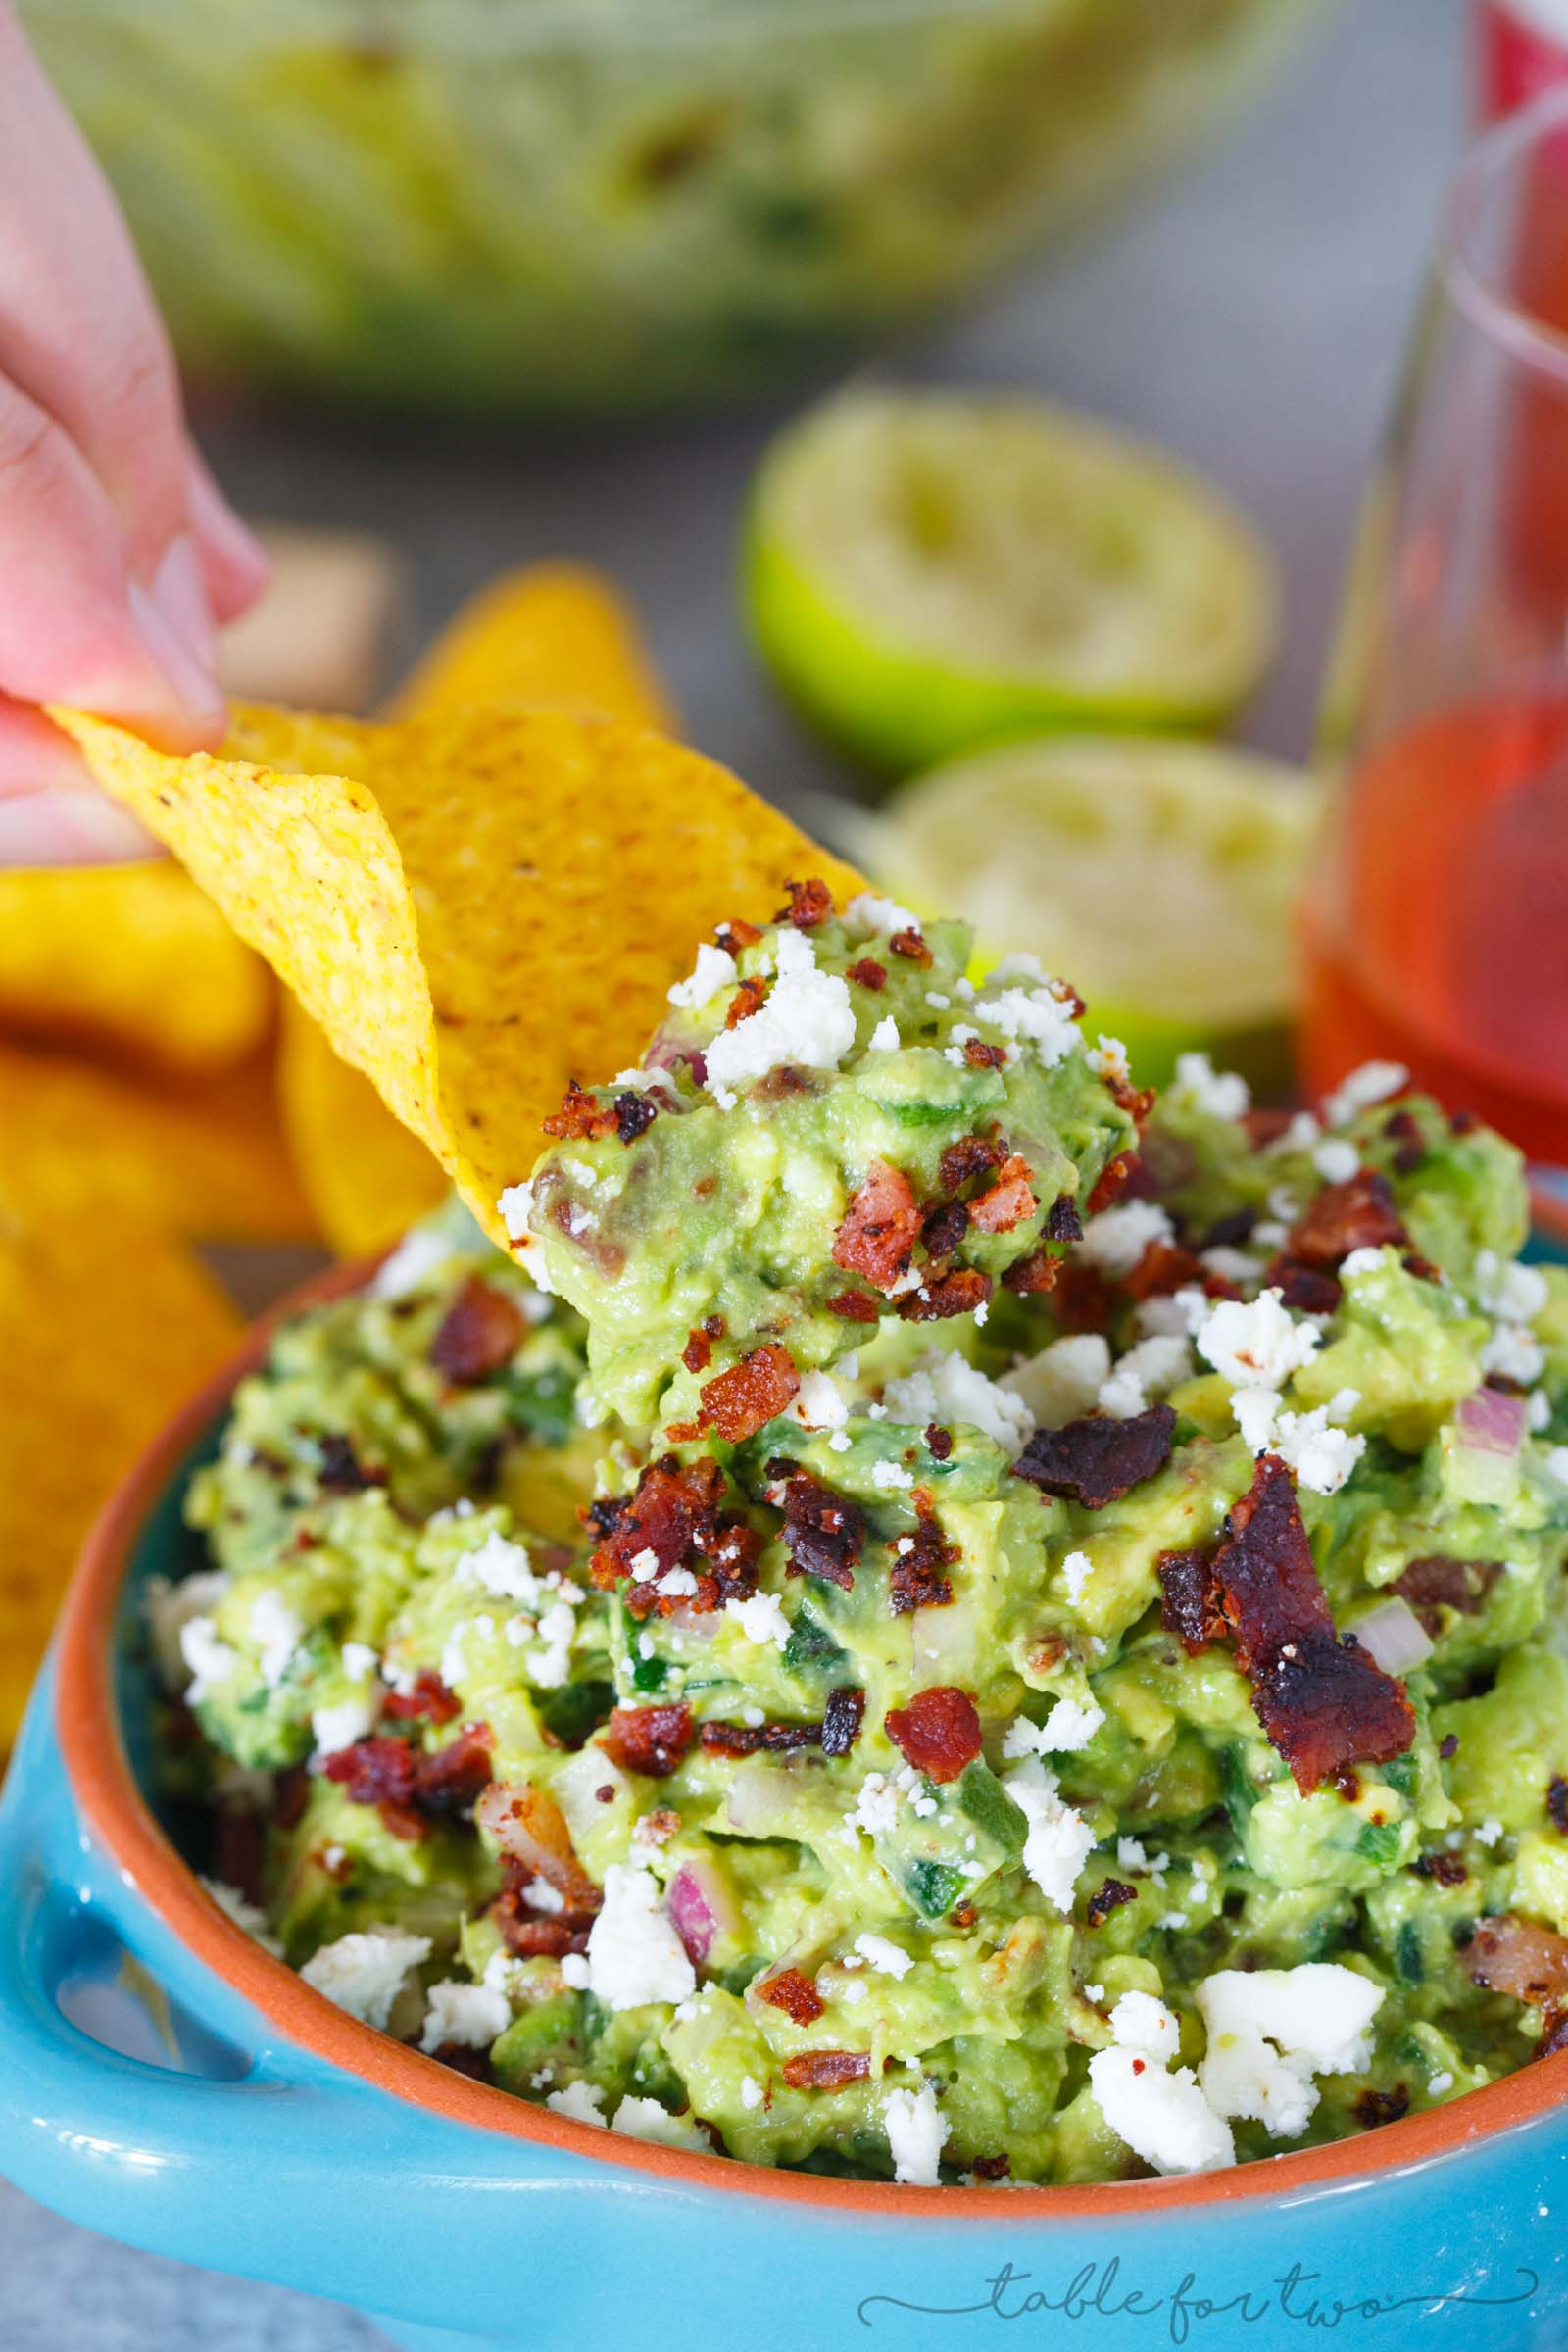 Loaded guacamole is pretty much the only way to have guacamole these days. Roasted poblano peppers, bacon, and queso fresco make this guacamole freaking amazing especially with a glass of @sutterhome White Zinfandel! #ad #sweetonspice